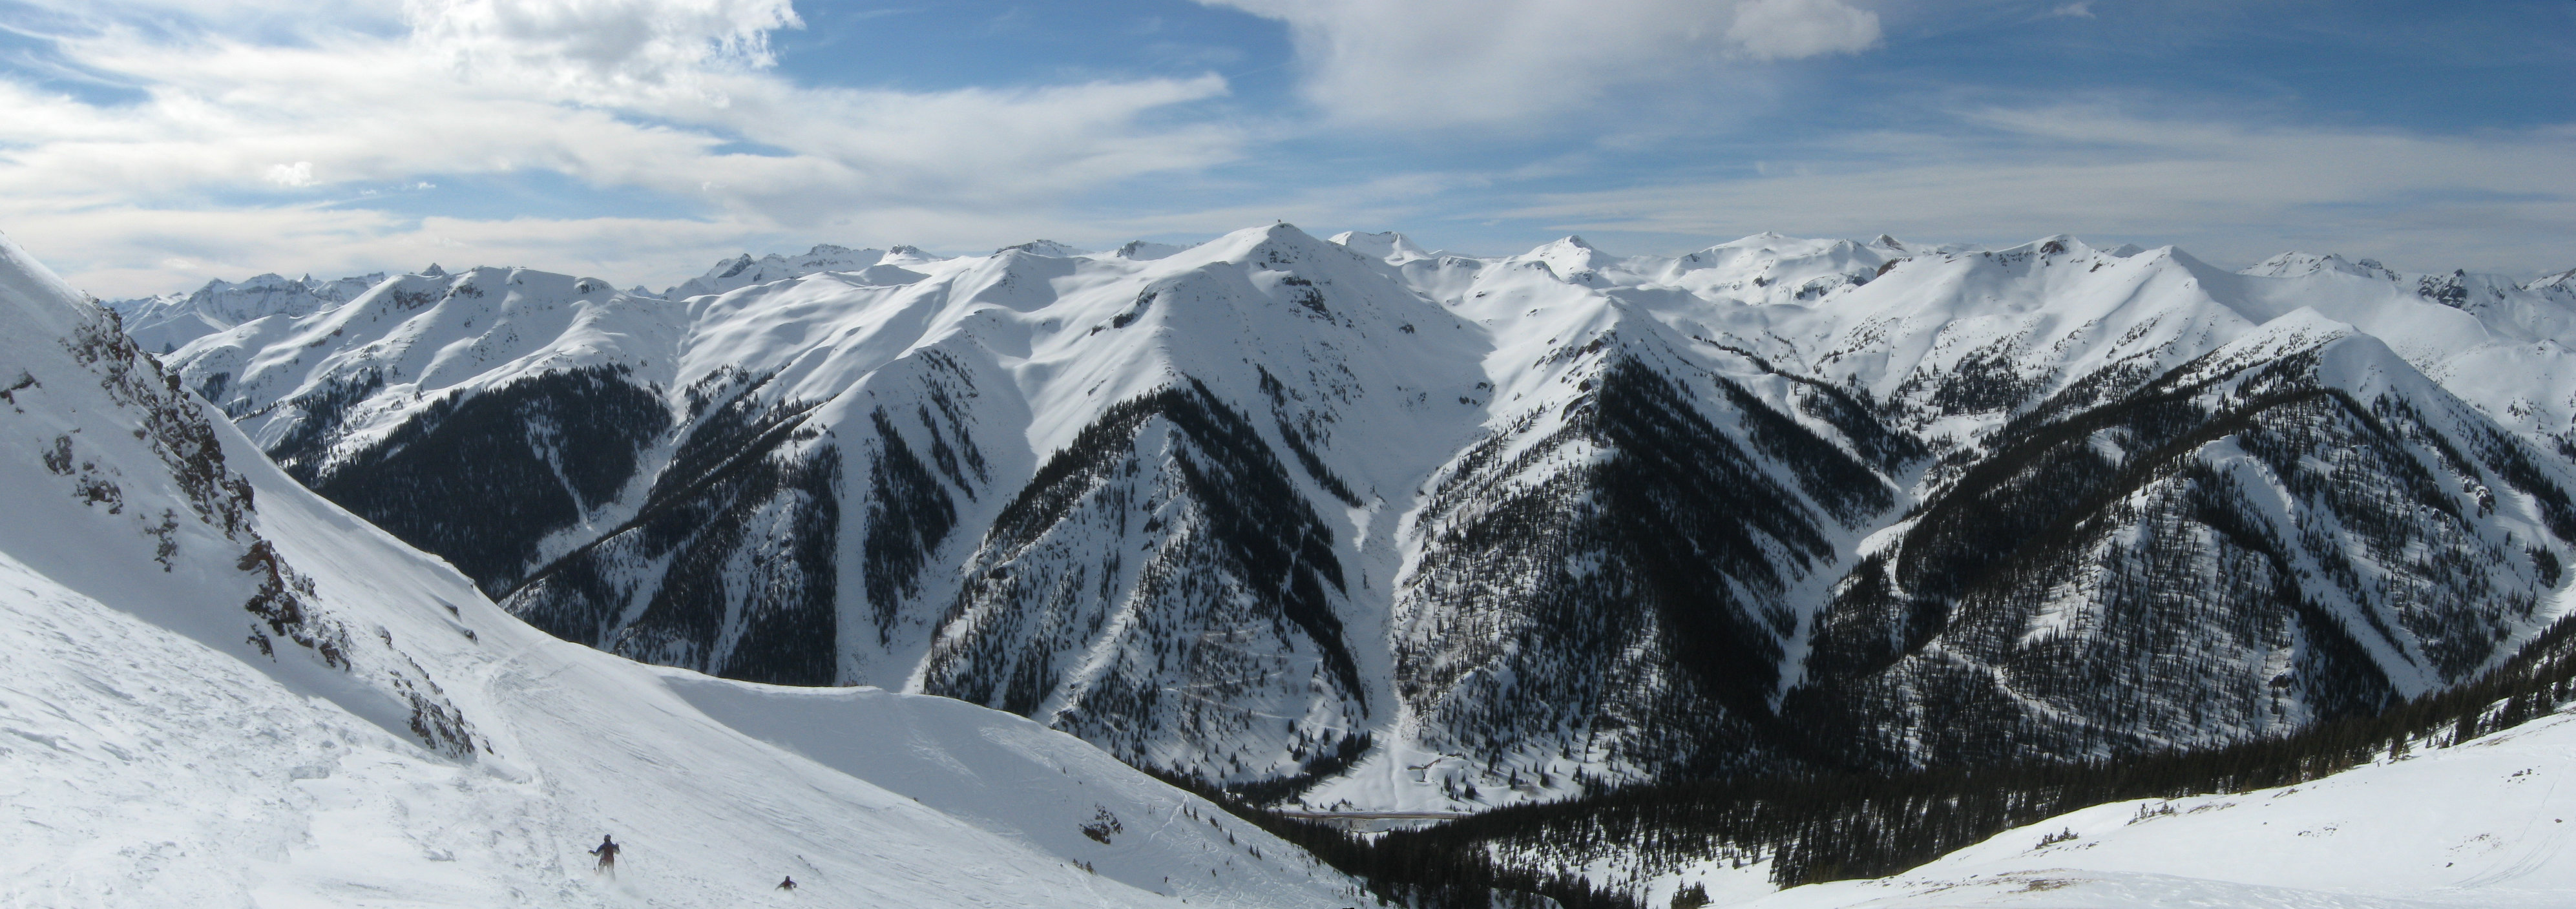 View from Tiger Claw, Silverton, CO